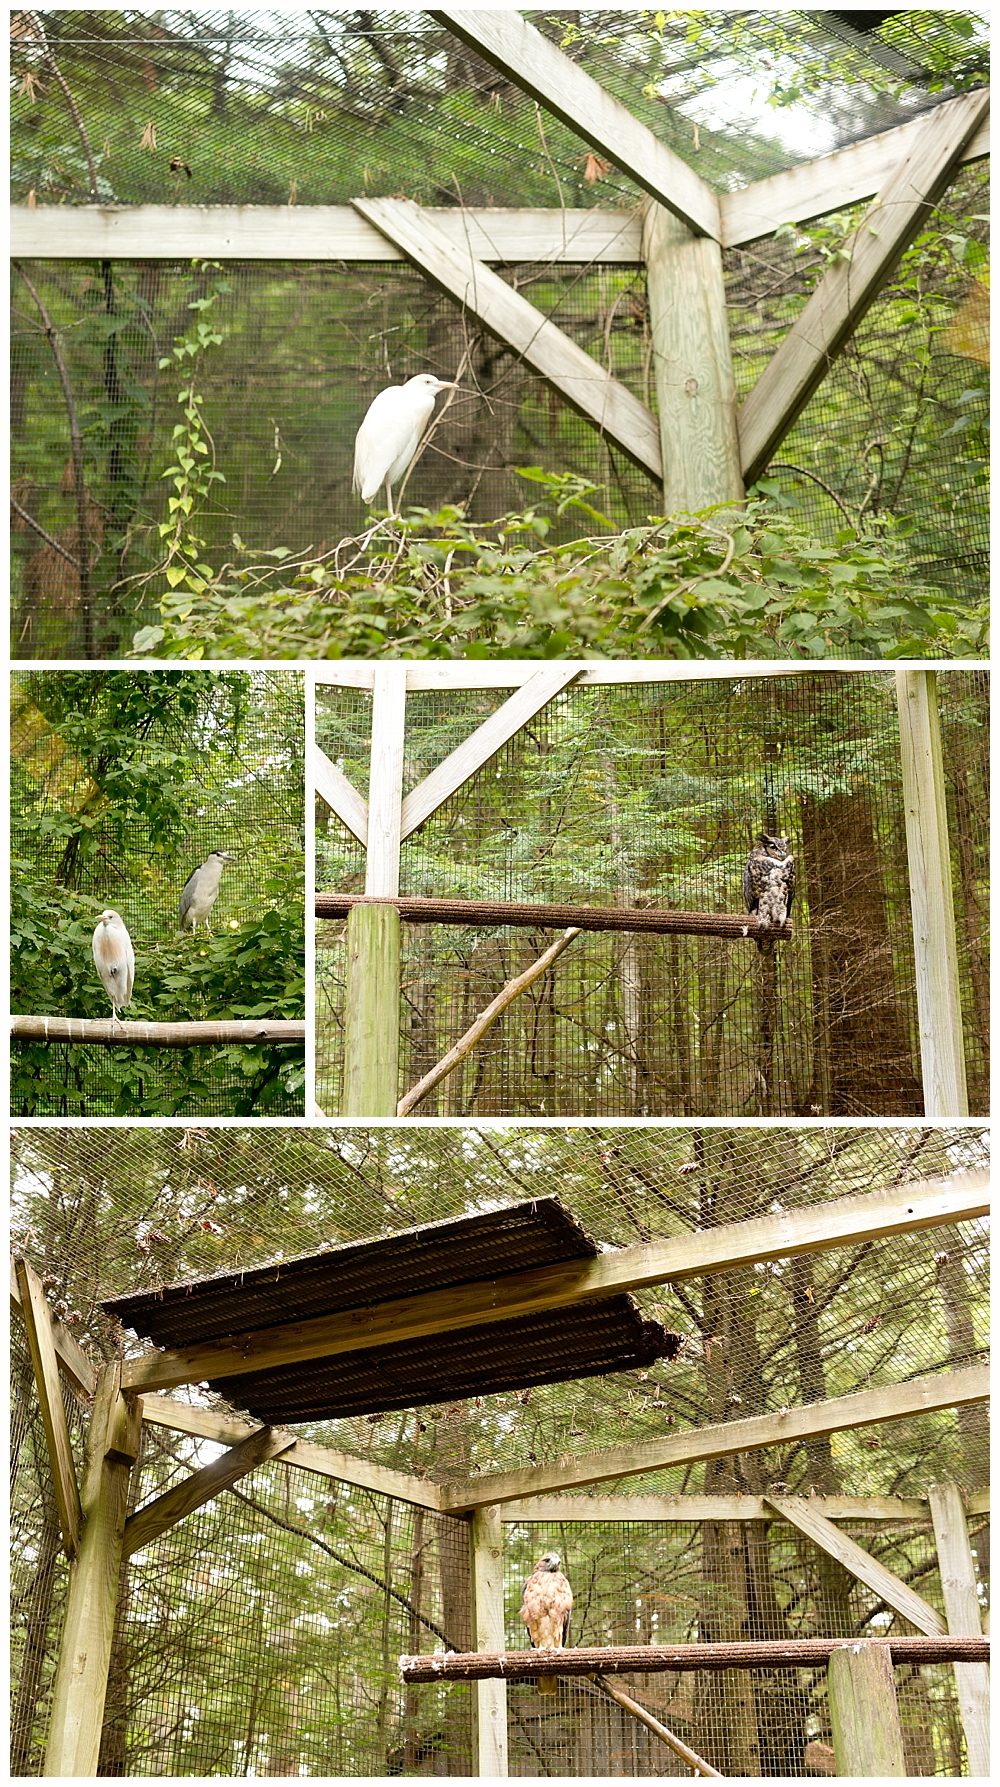 bird exhibit at Squam Lakes Natural Science Center